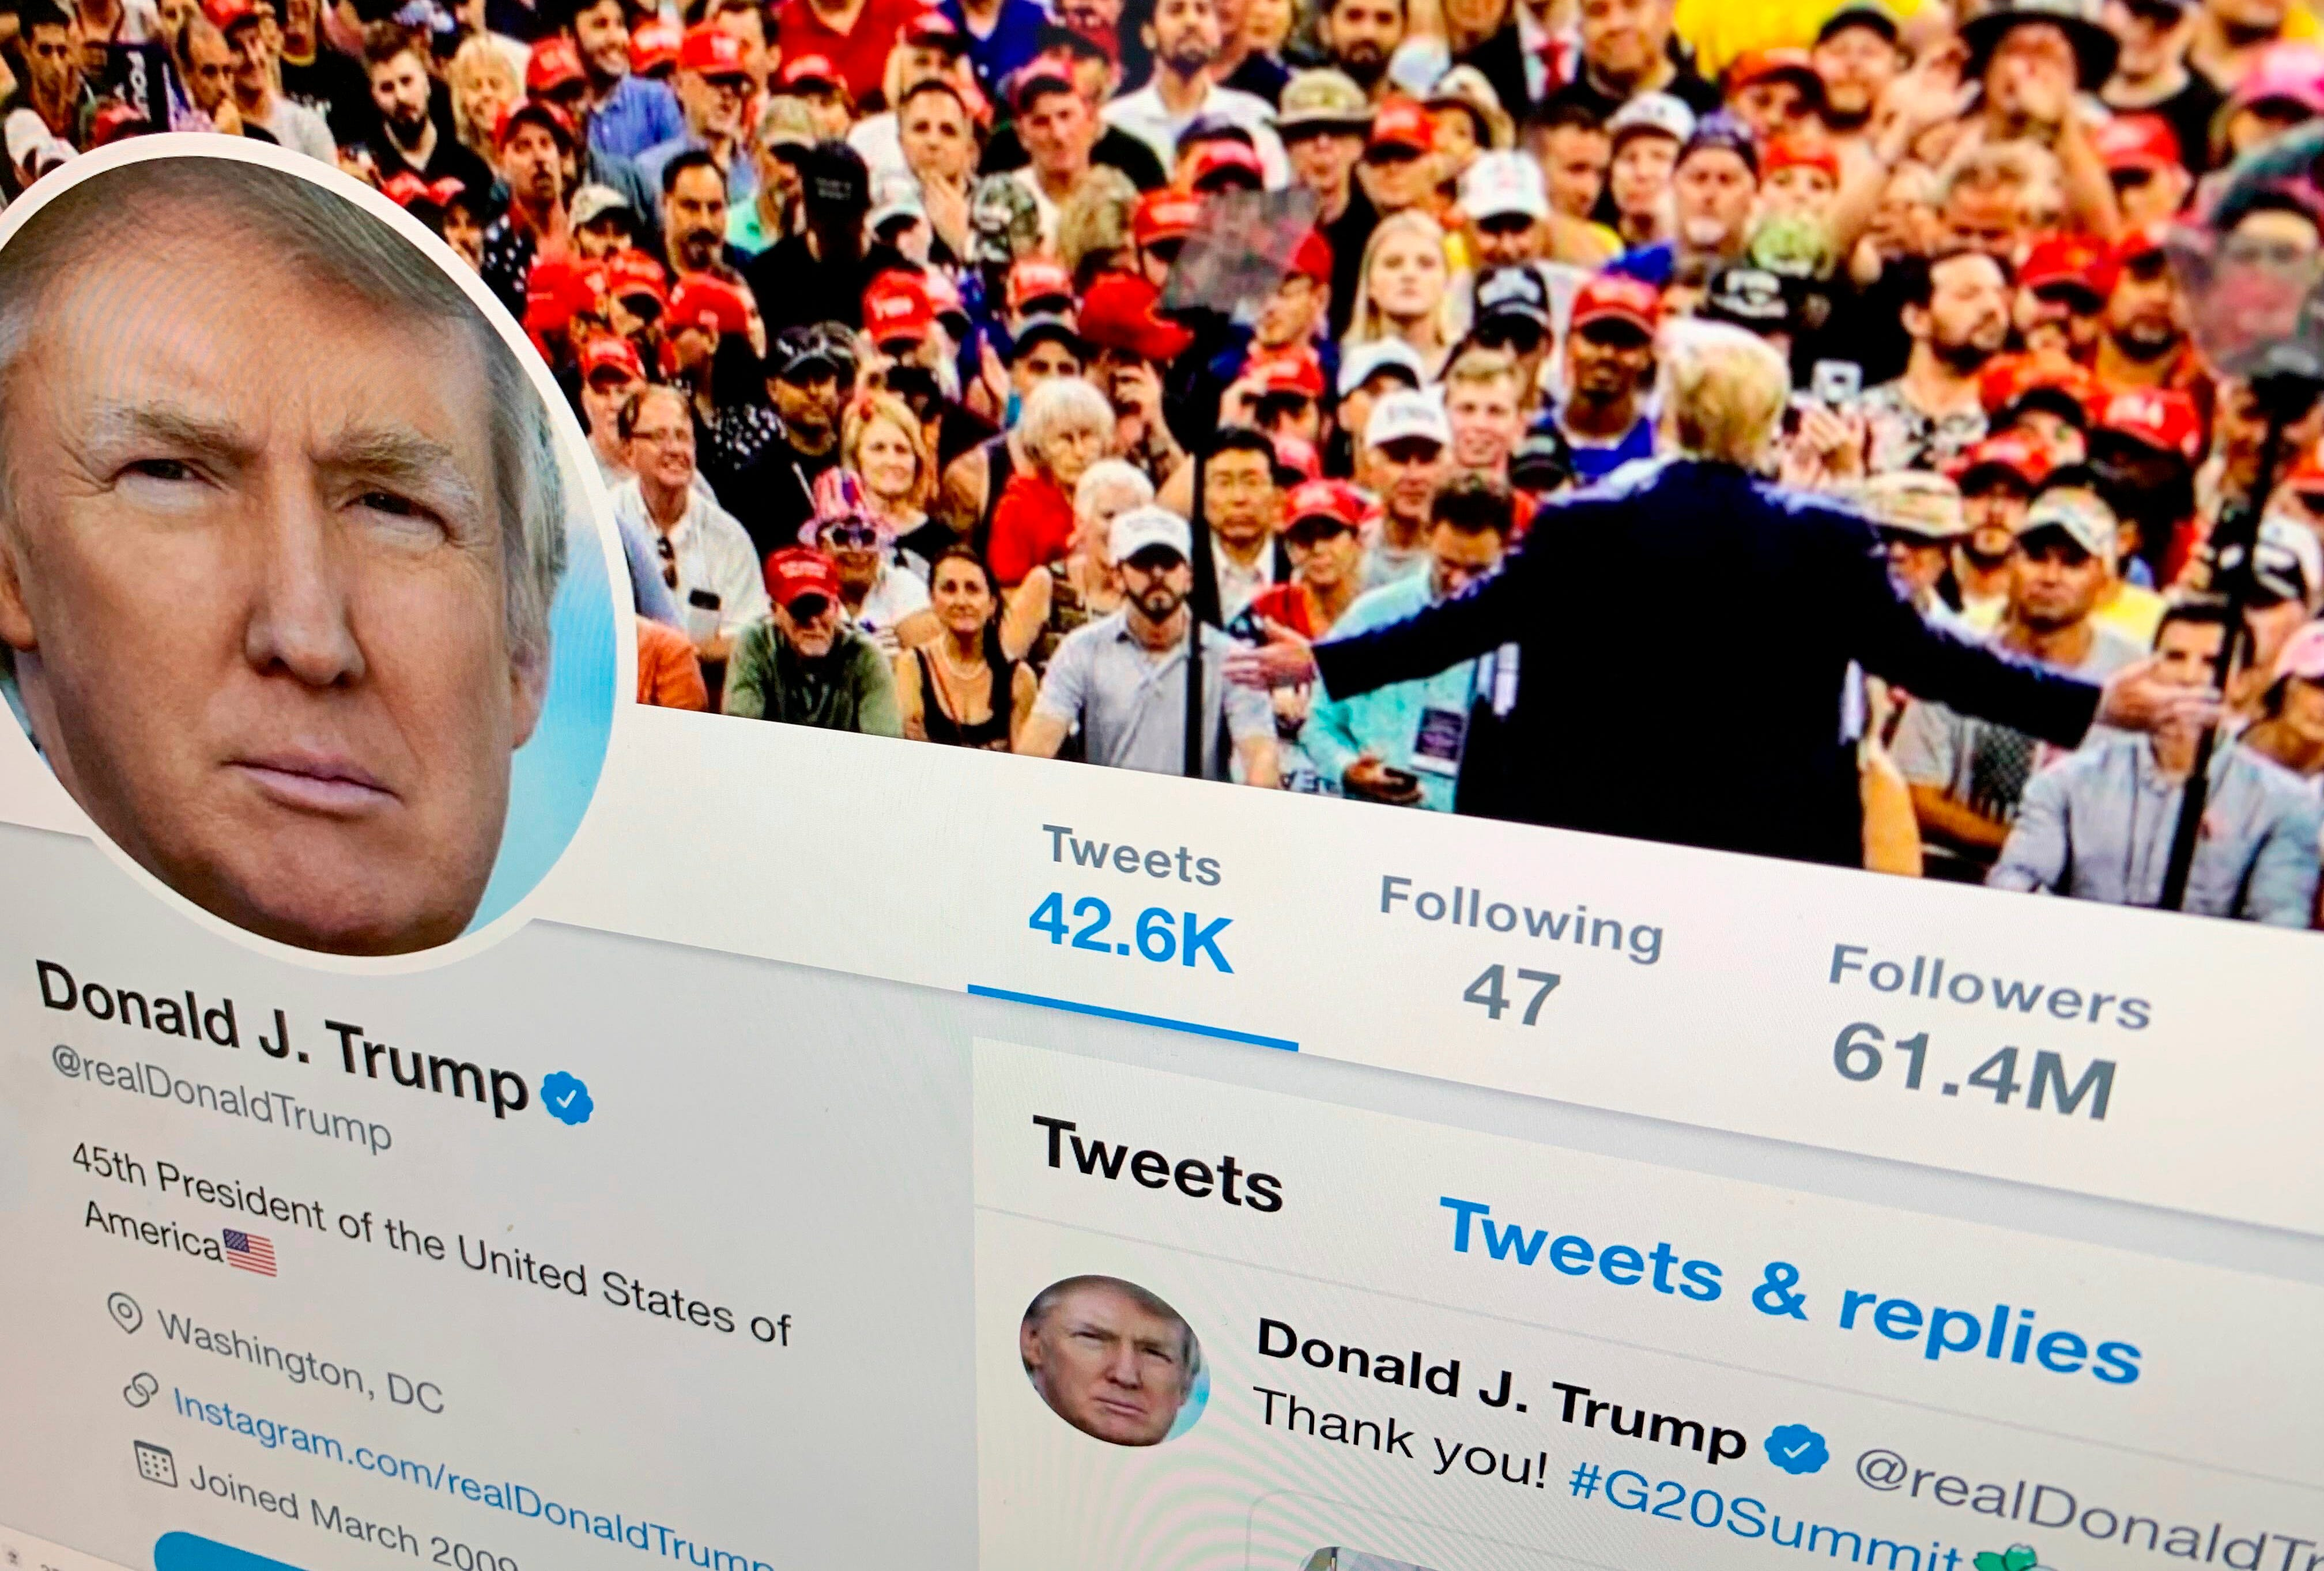 Trump will be a regular citizen on Twitter when he steps down, beholden to all its rules